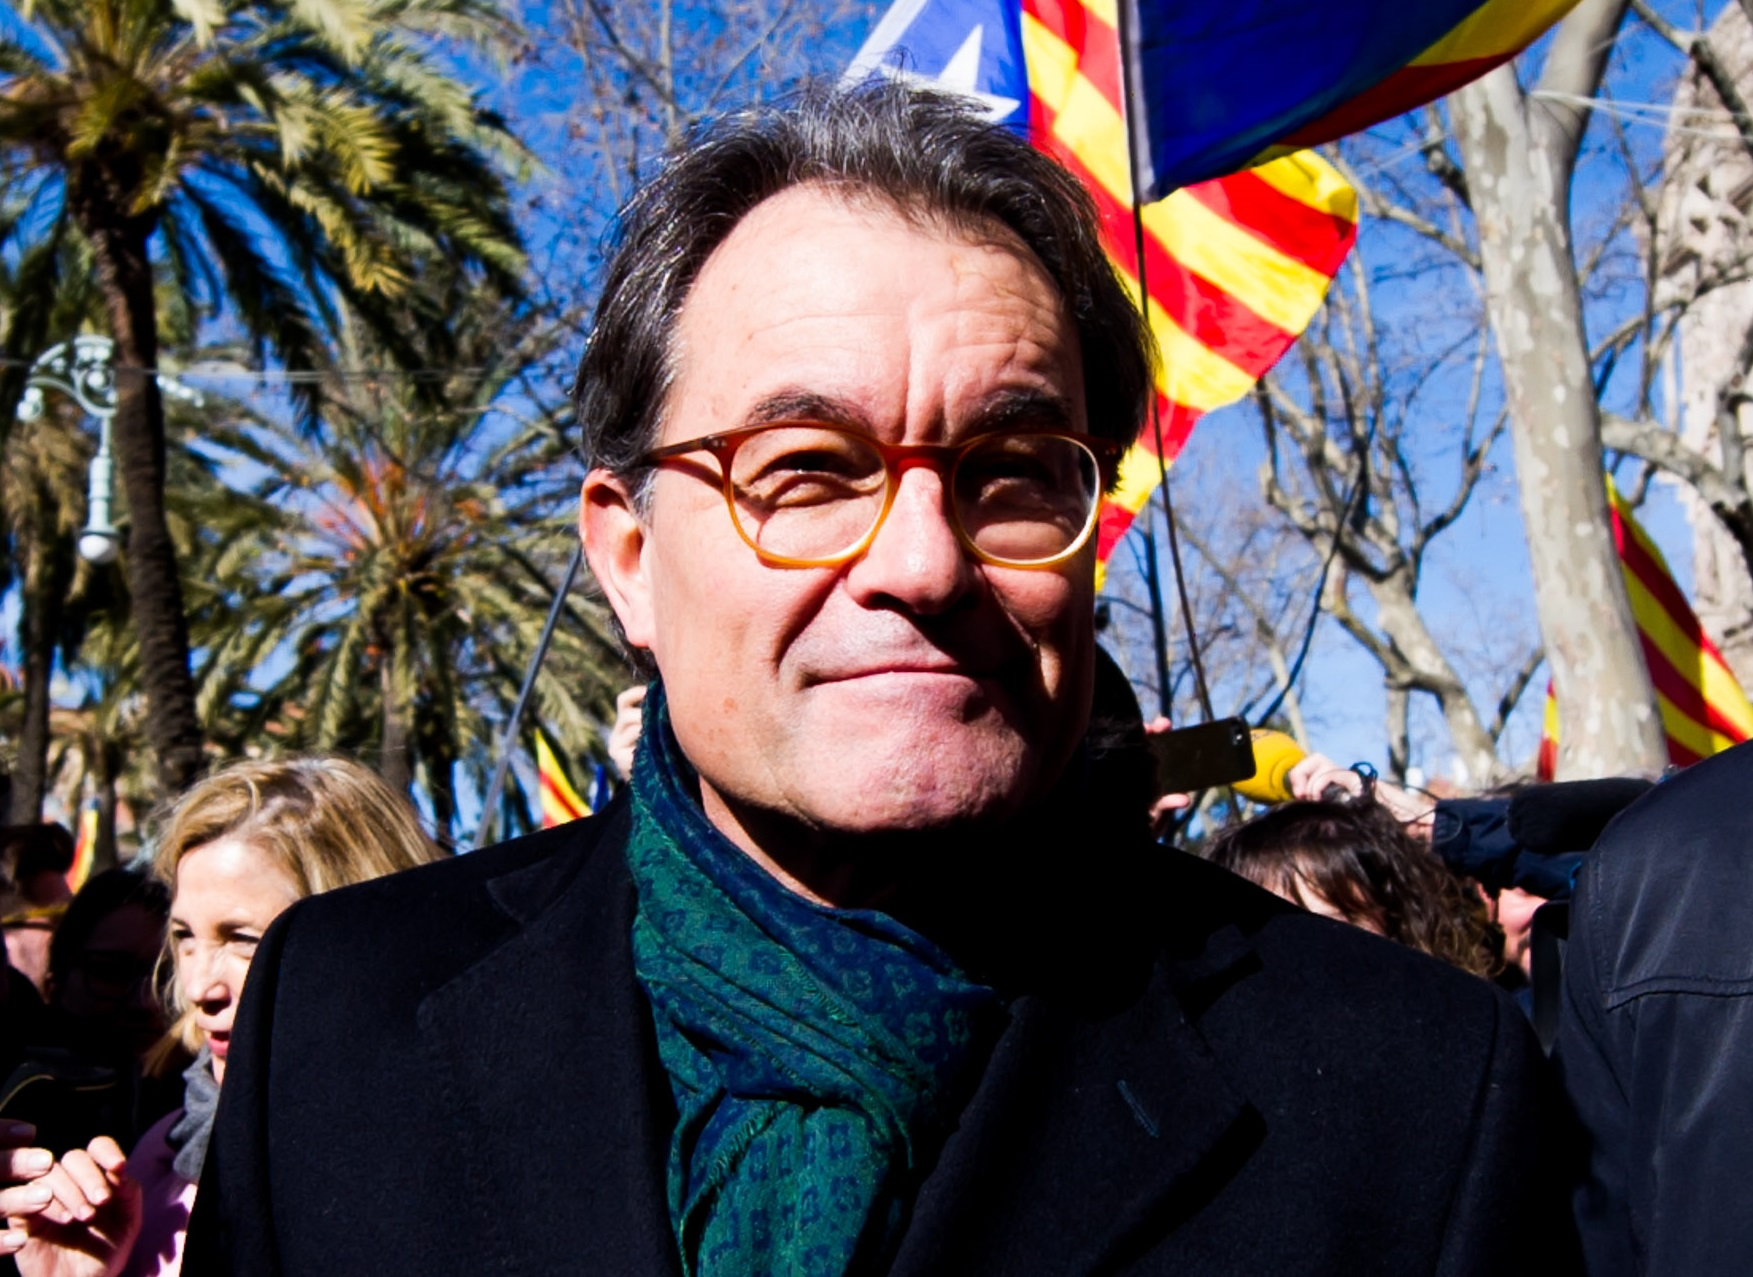 Artur Mas faces a 10-year ban from holding public office for disobedience and wrongdoing